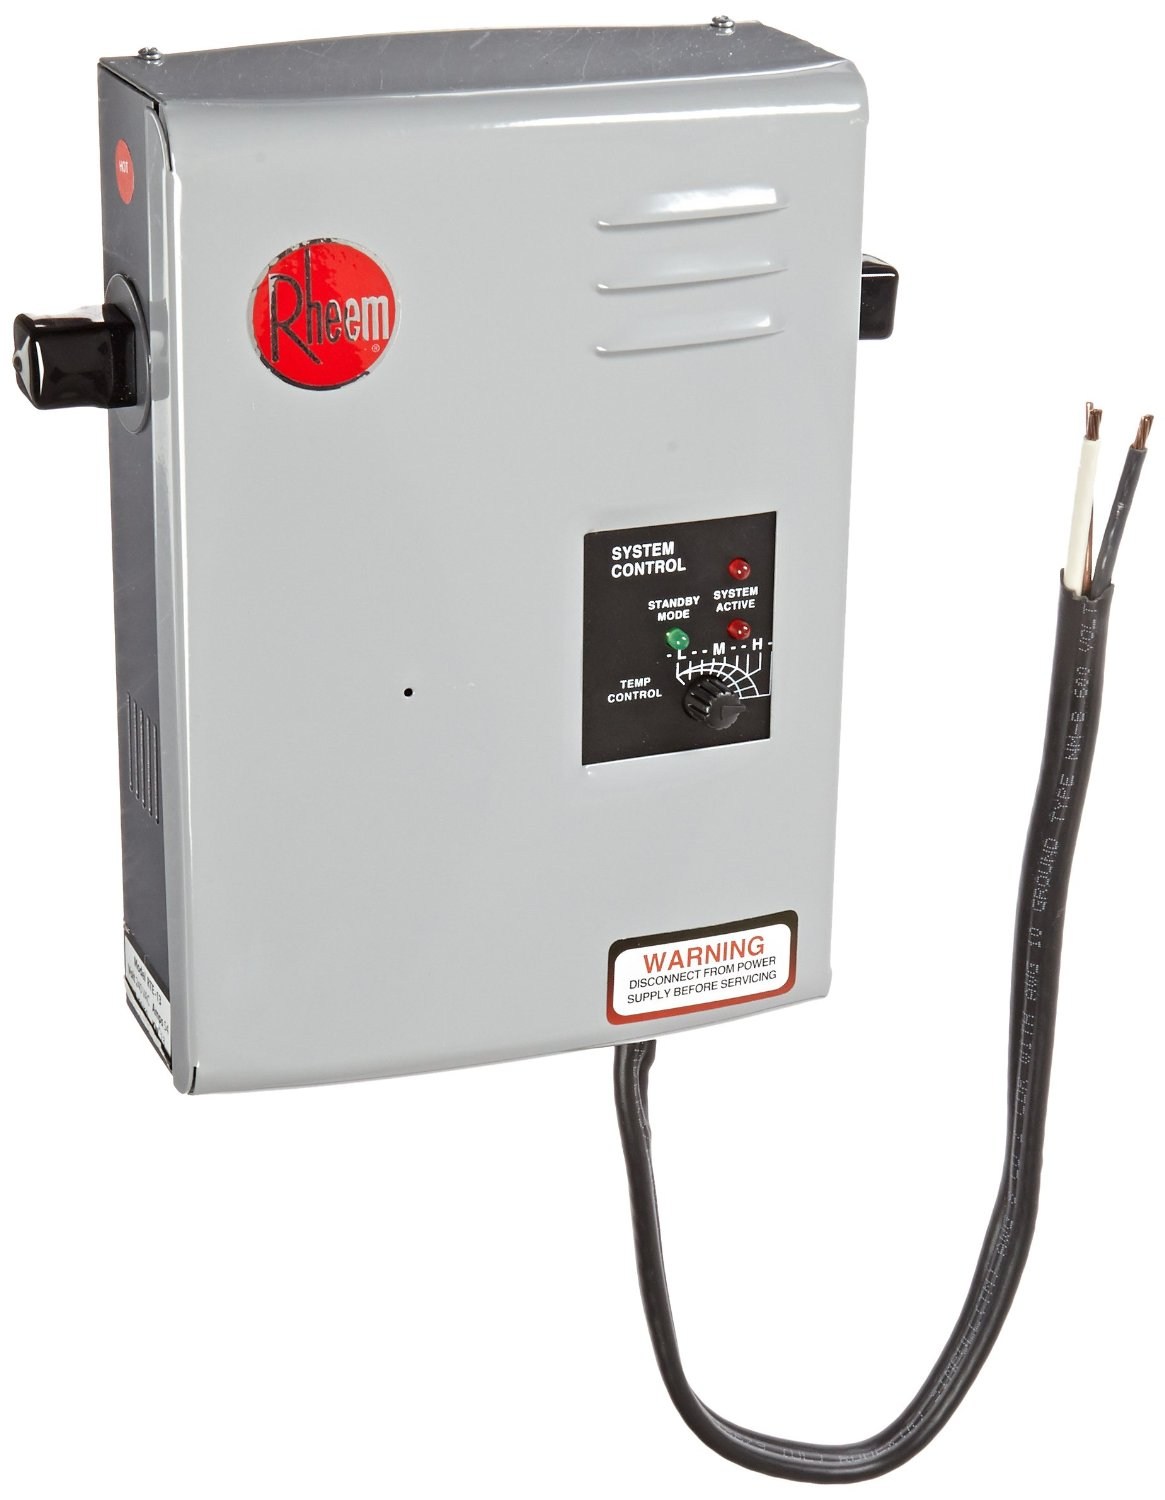 Rheem RTE 13 Electric Tankless Water Heater rheem rte 13 electric tankless water heater reviews rheem rte 9 wiring diagram at bakdesigns.co